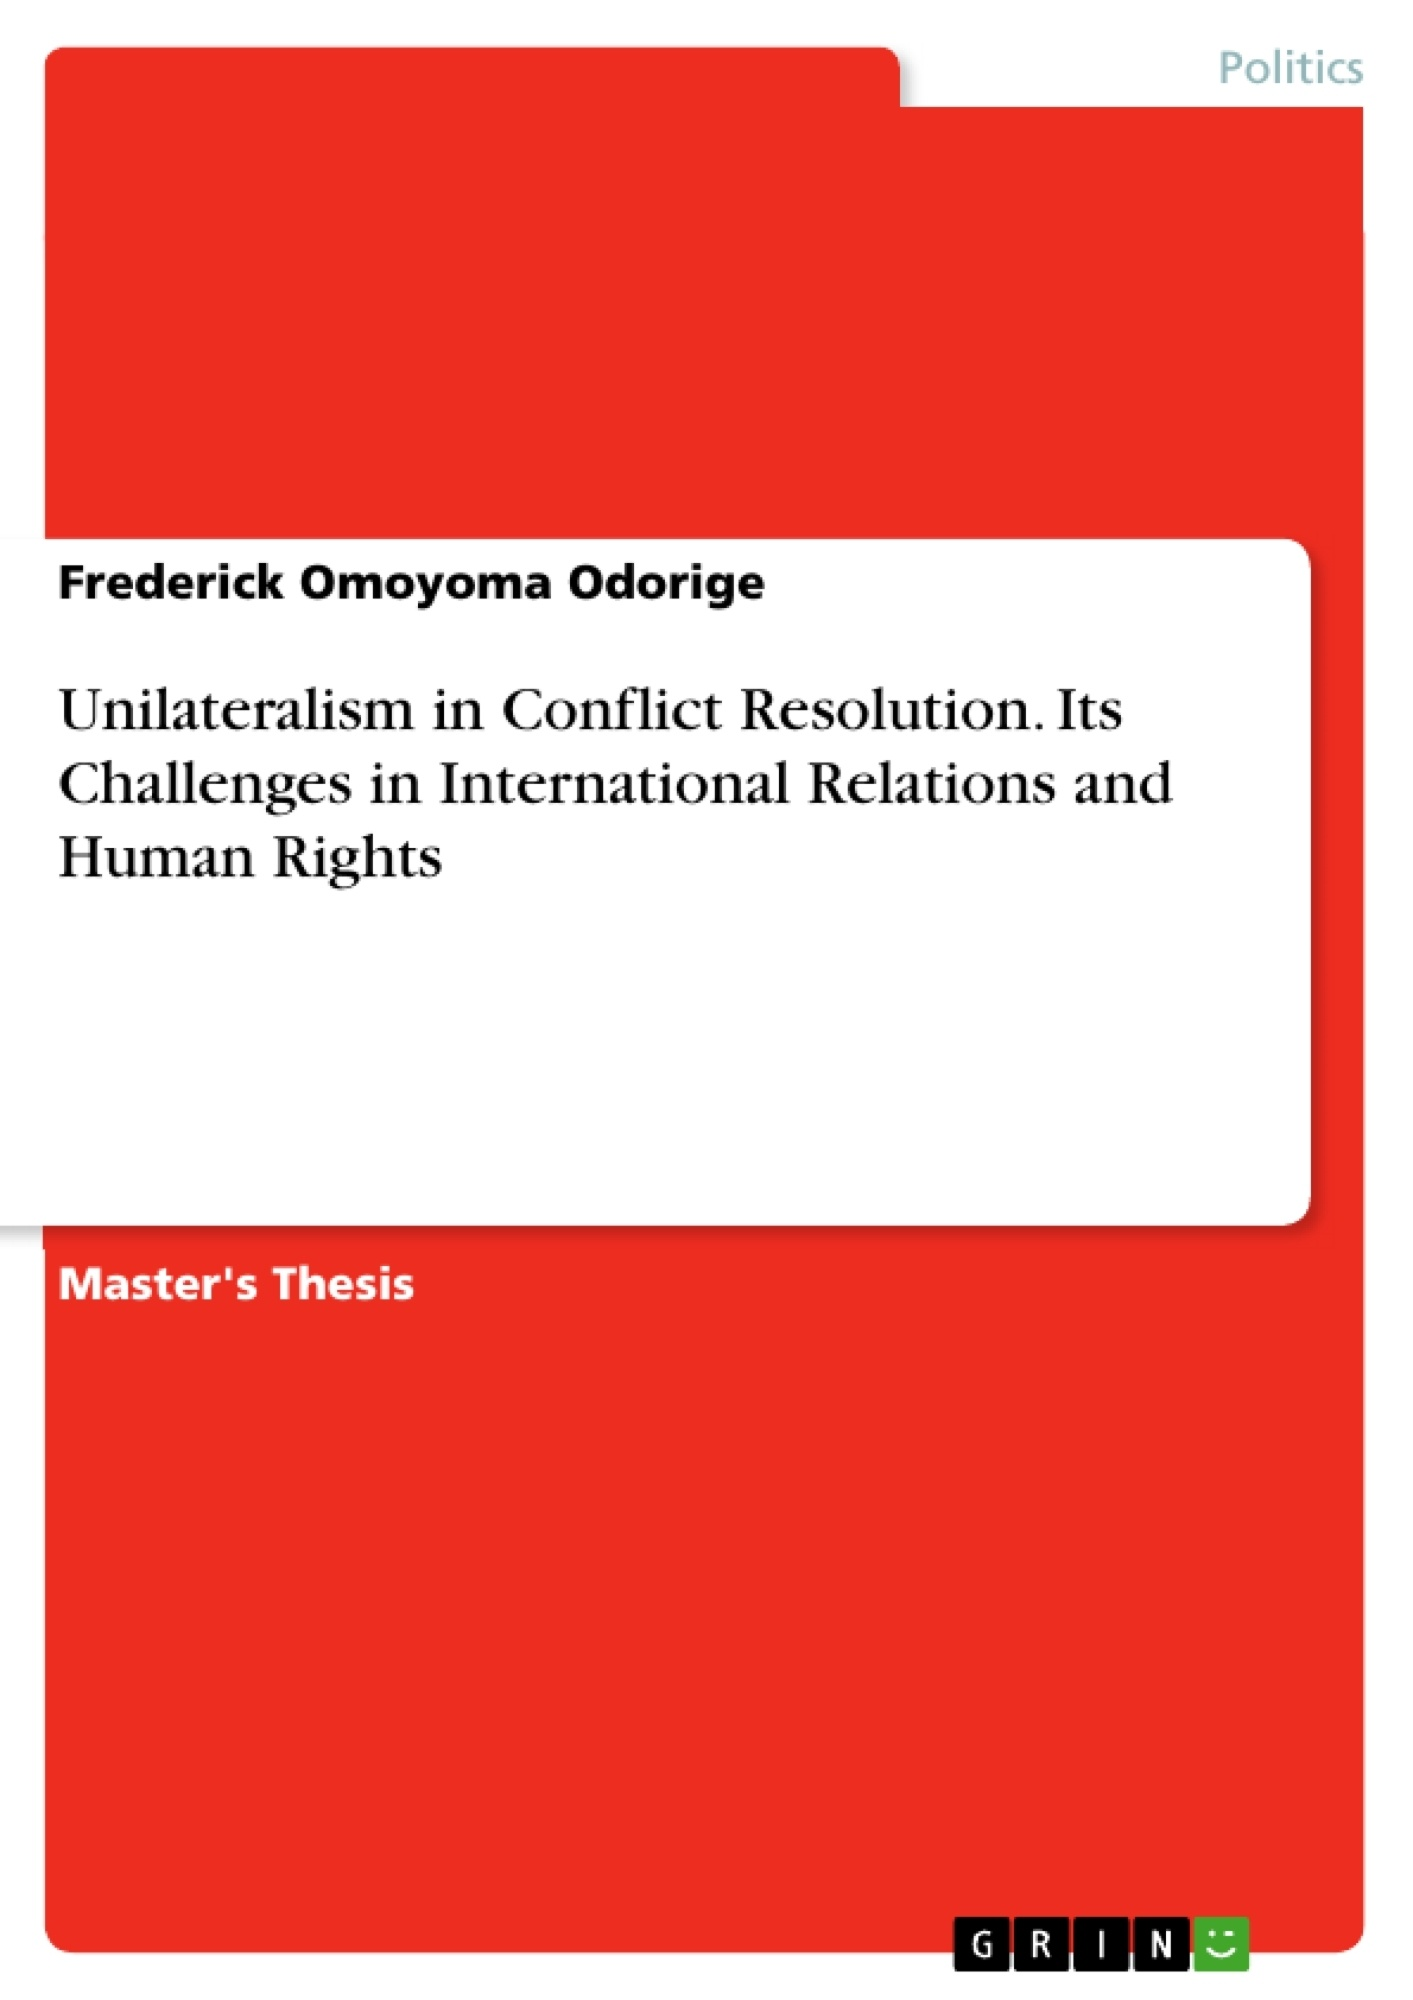 Title: Unilateralism in Conflict Resolution. Its Challenges in International Relations and Human Rights